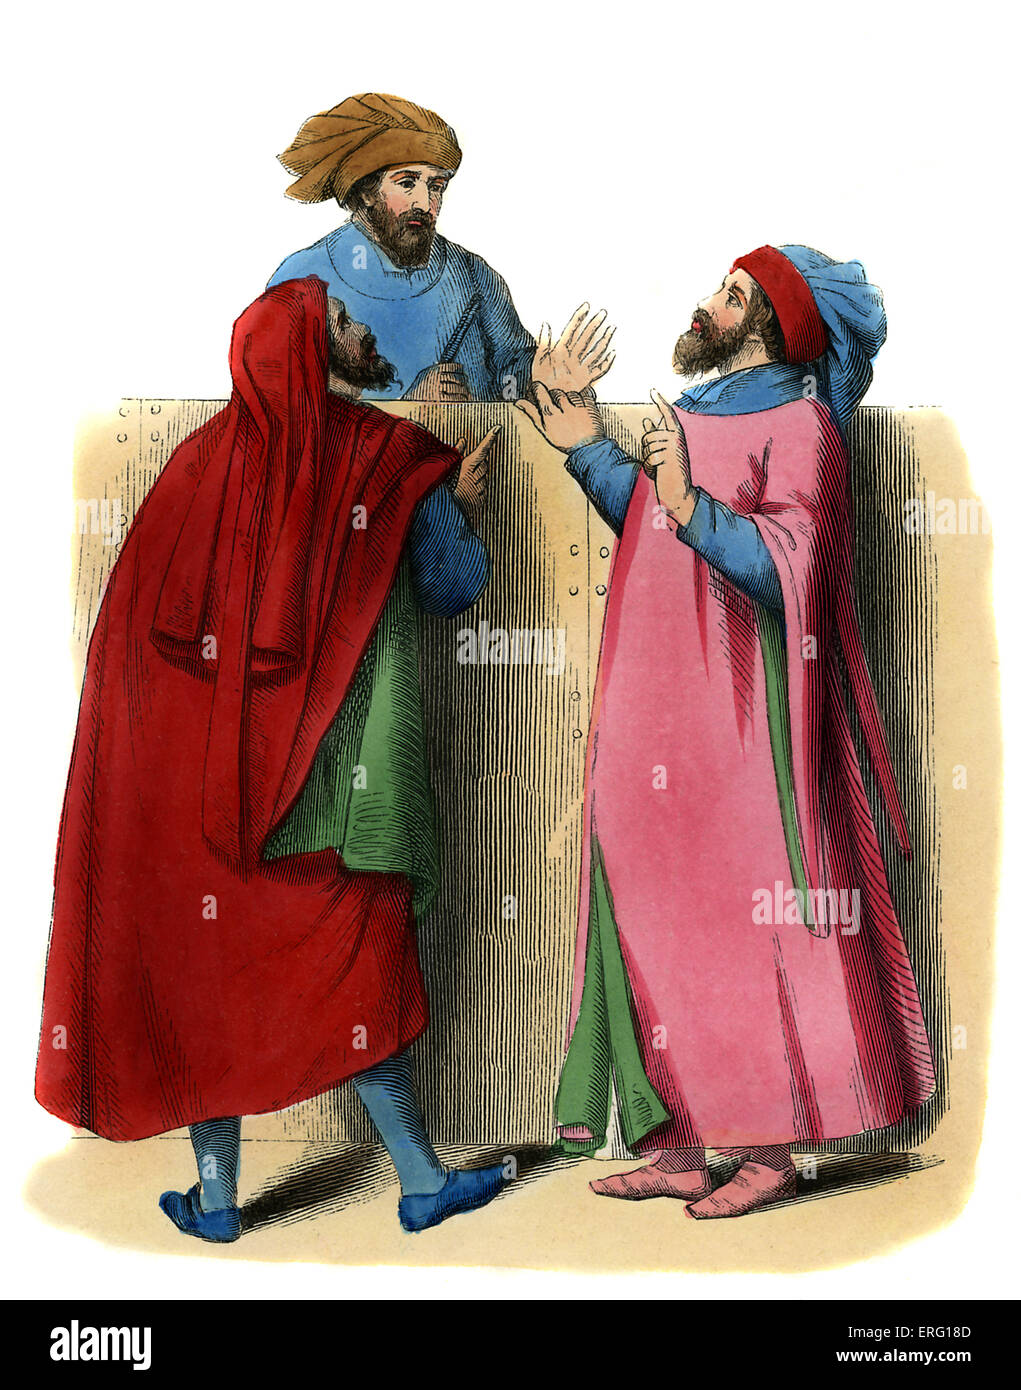 Italian artisans - male costume of 14th century. Shows two artisans talking to a notary. One is wearing scarlet - Stock Image